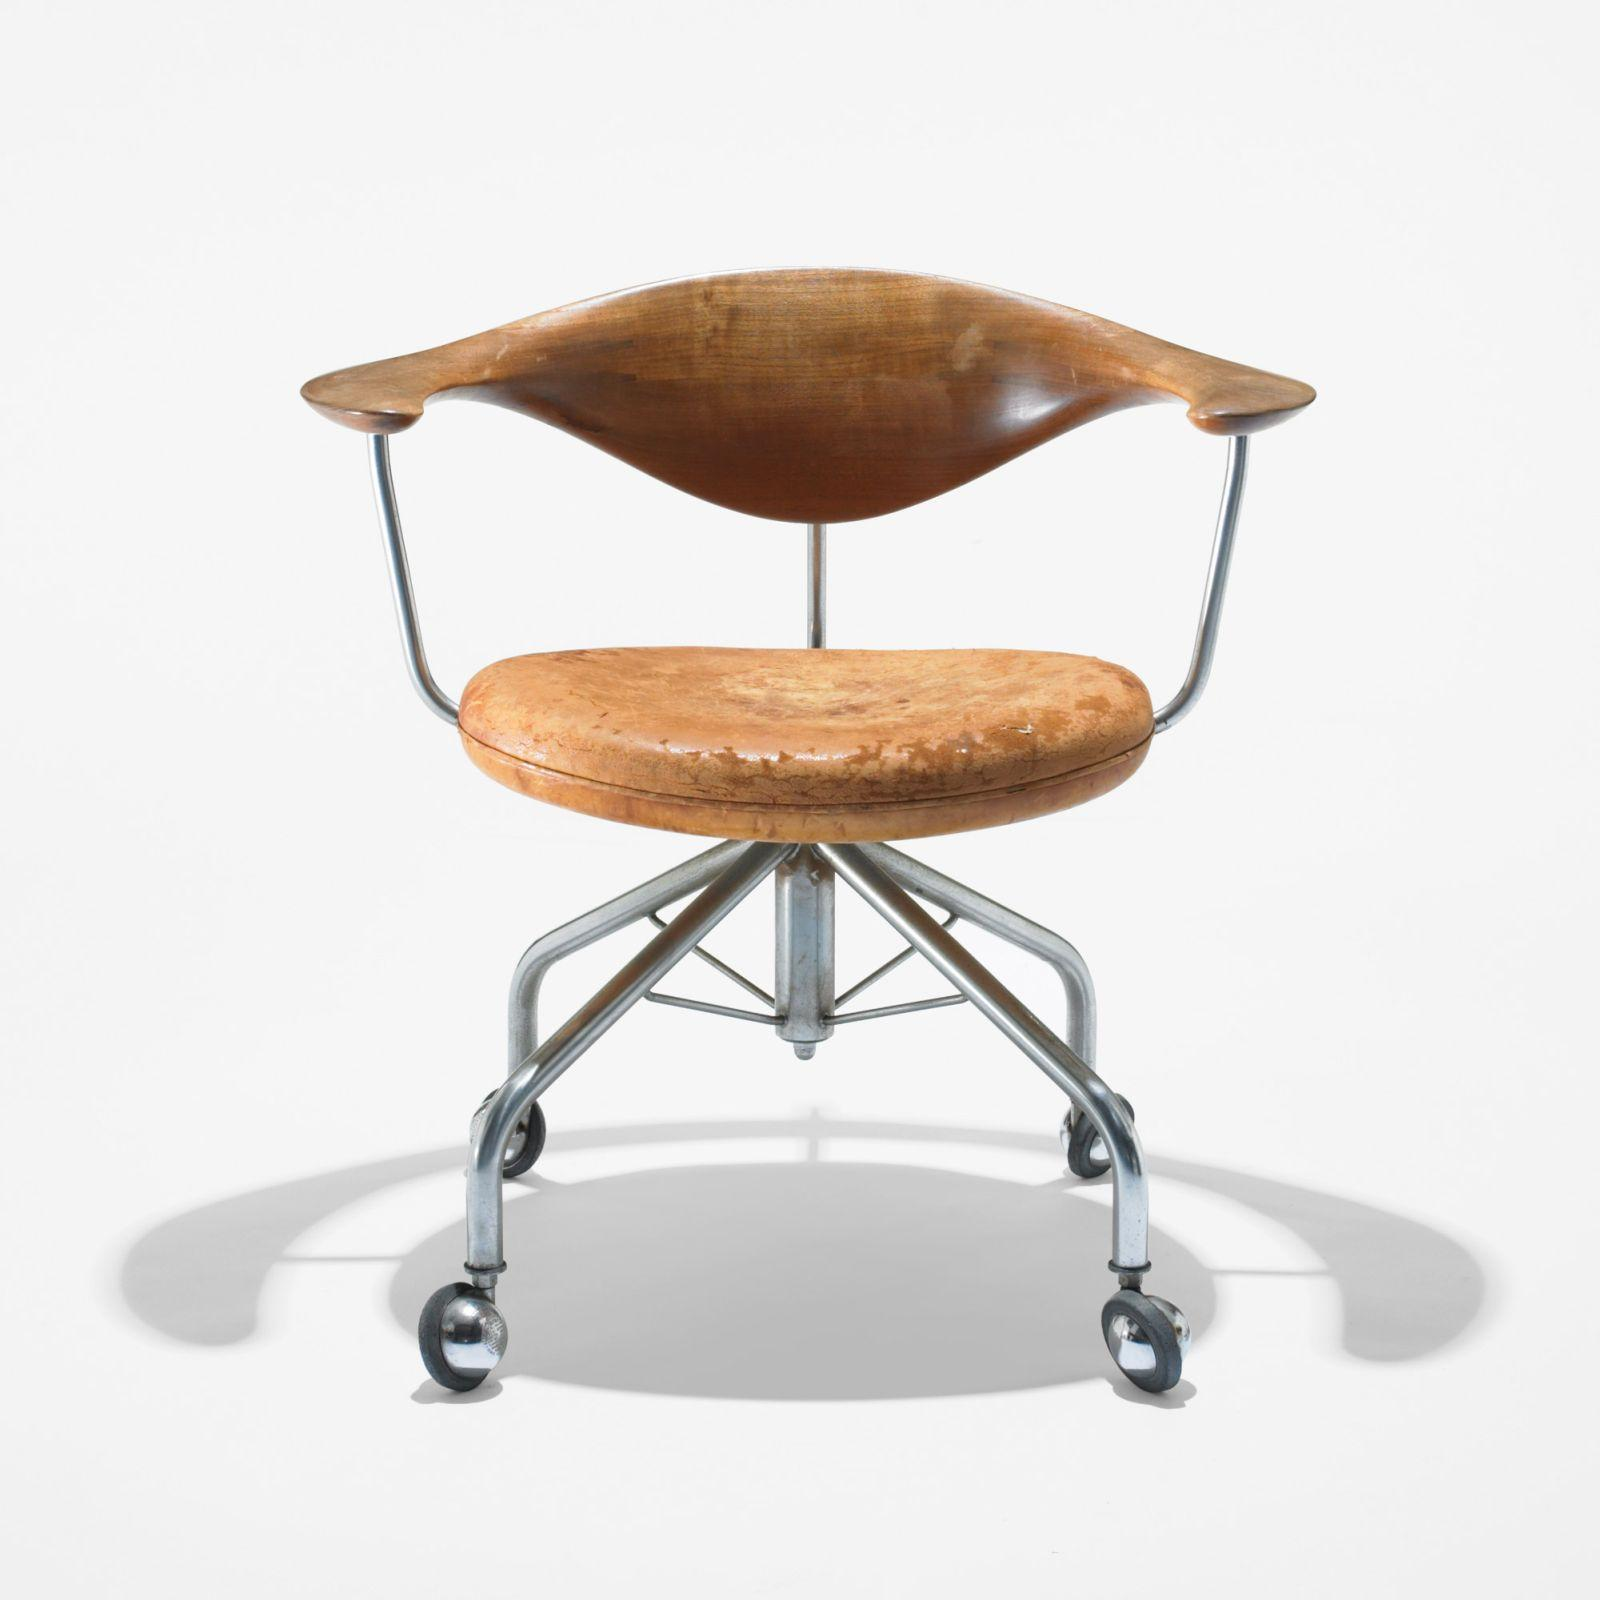 Wenger Chairs 1000 43 Images About Hans Wenger On Pinterest